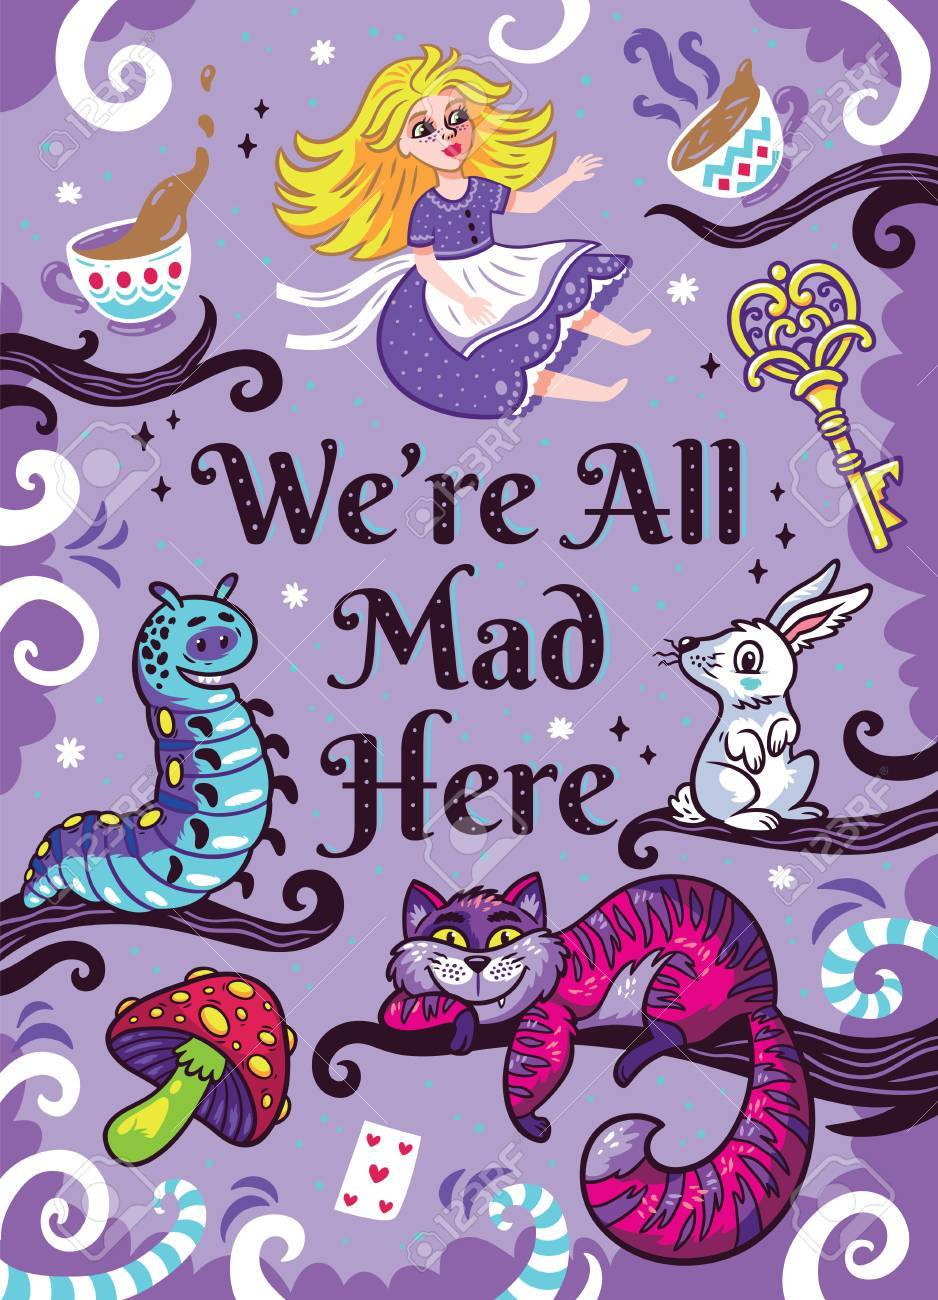 Print With Characters From Alice In Wonderland Royalty Free